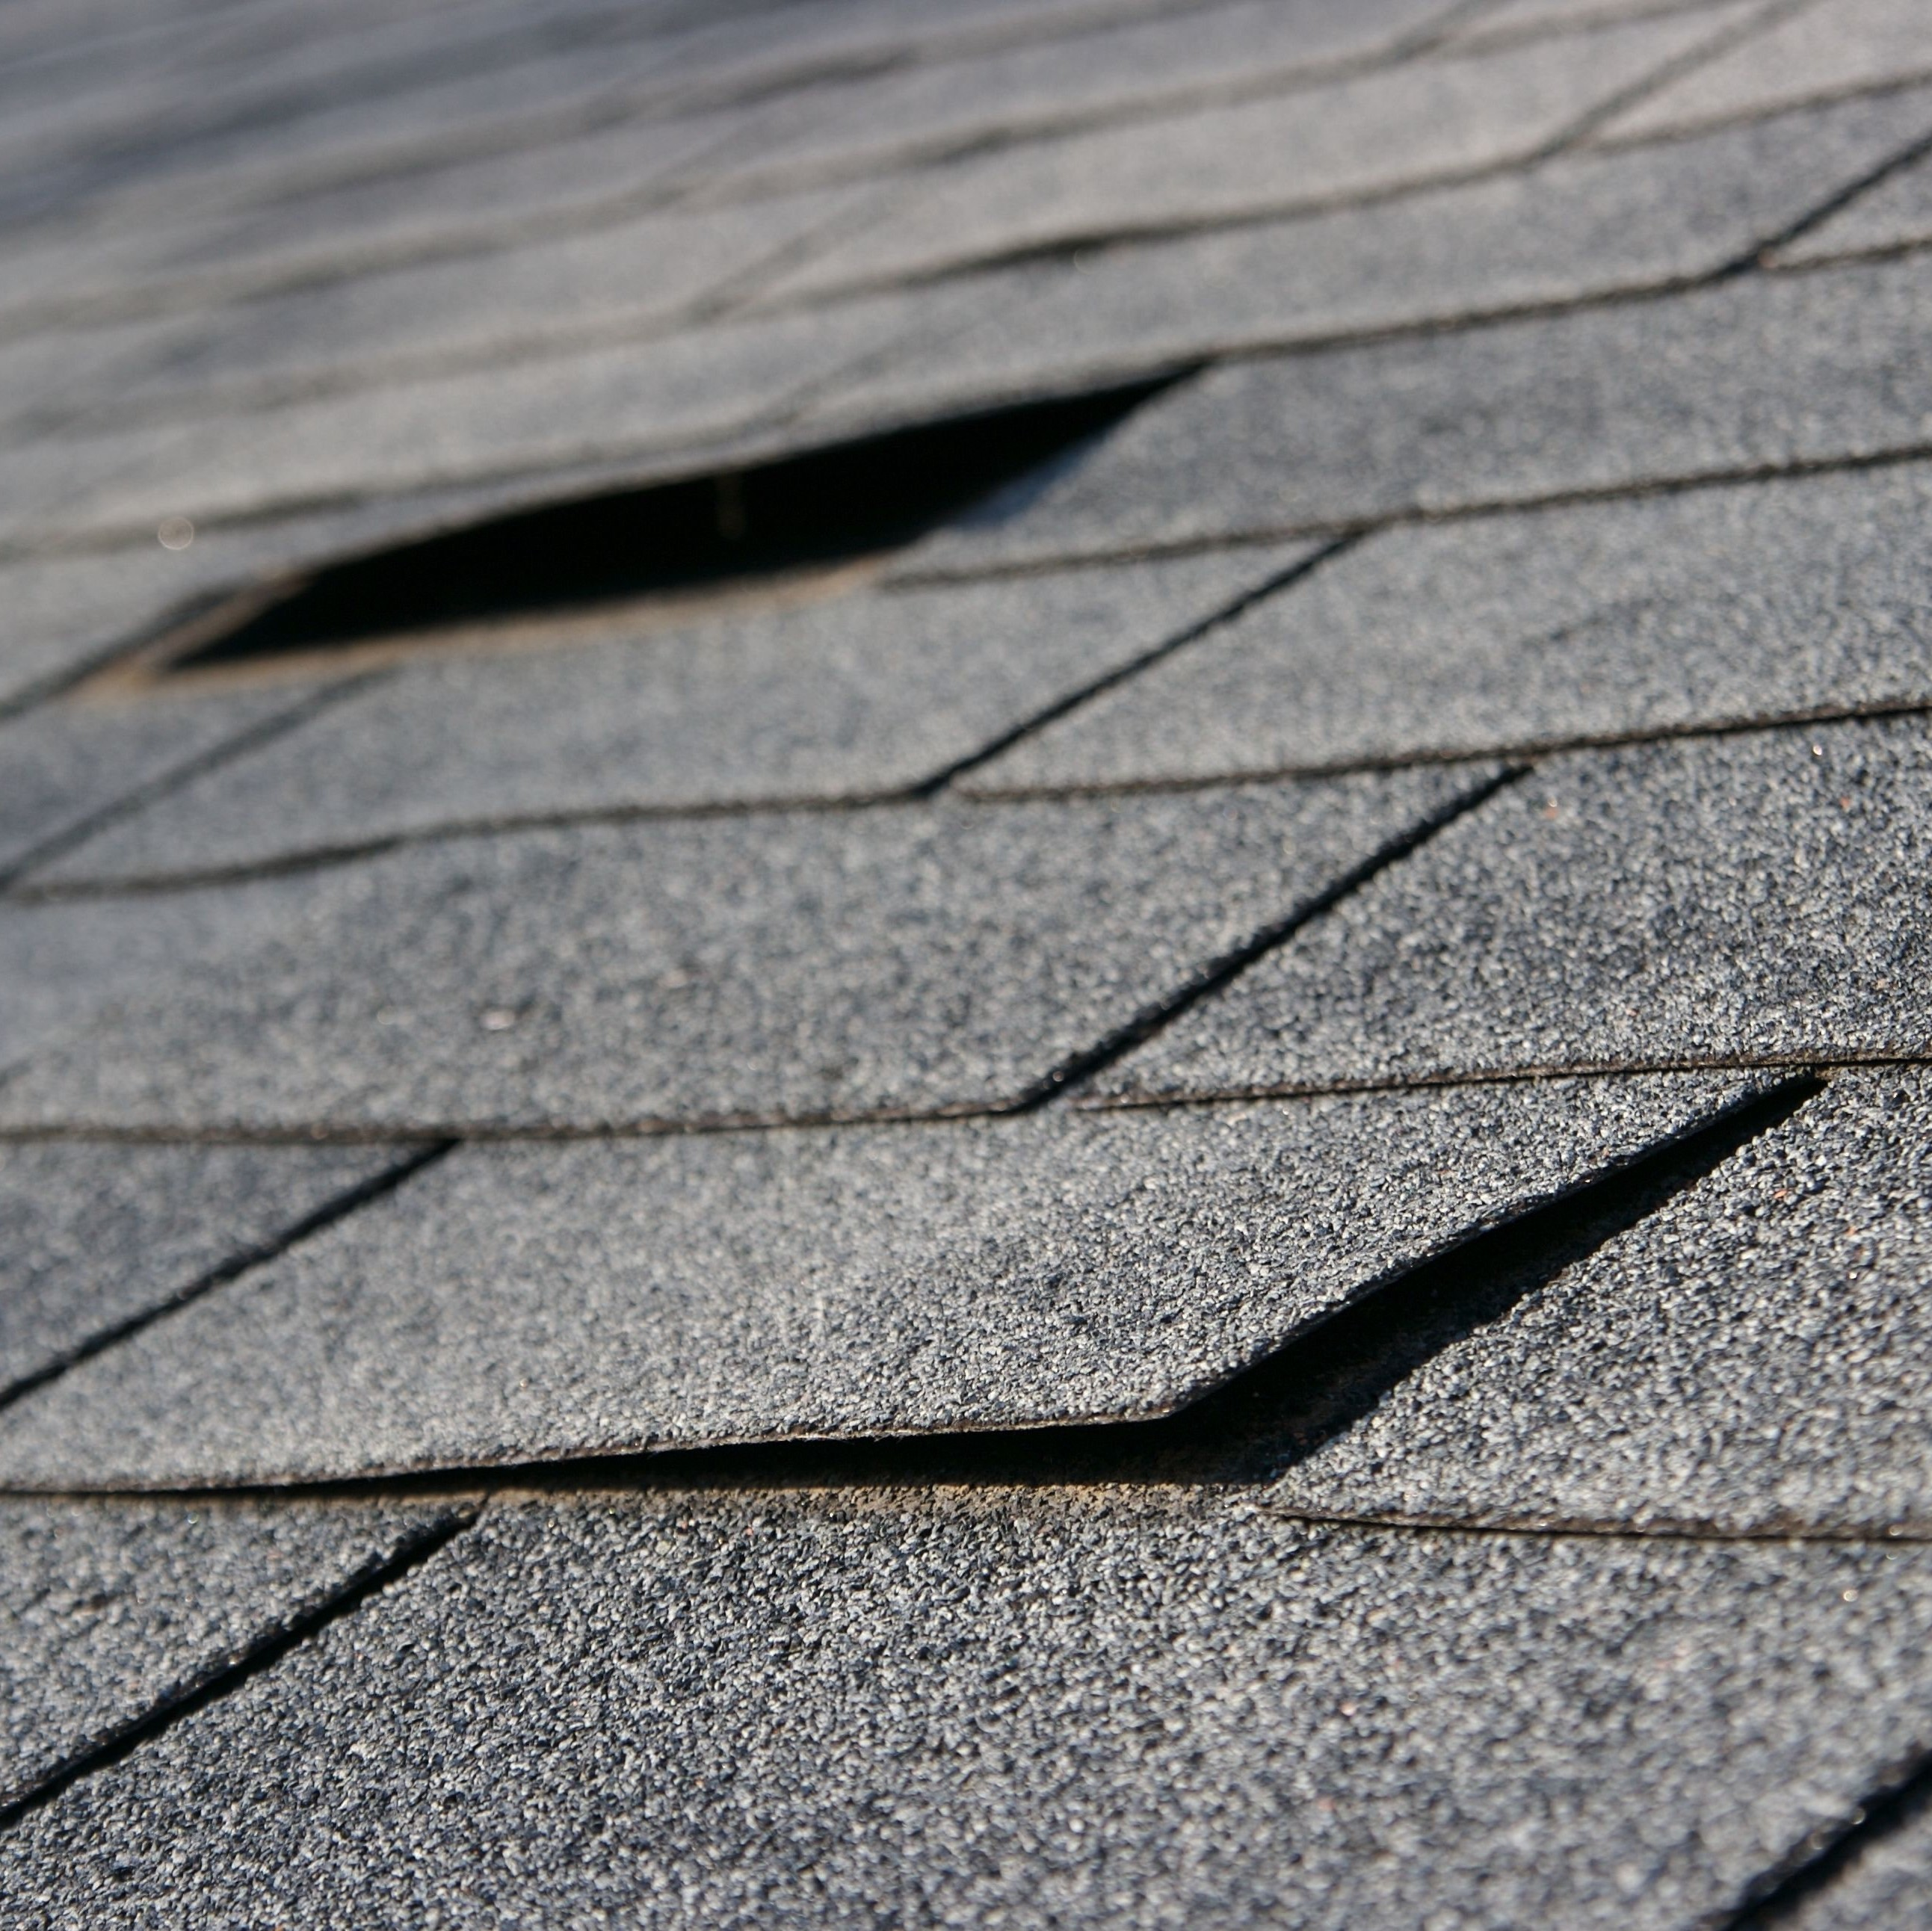 Asphalt shingles that need to be repaired so they function properly.